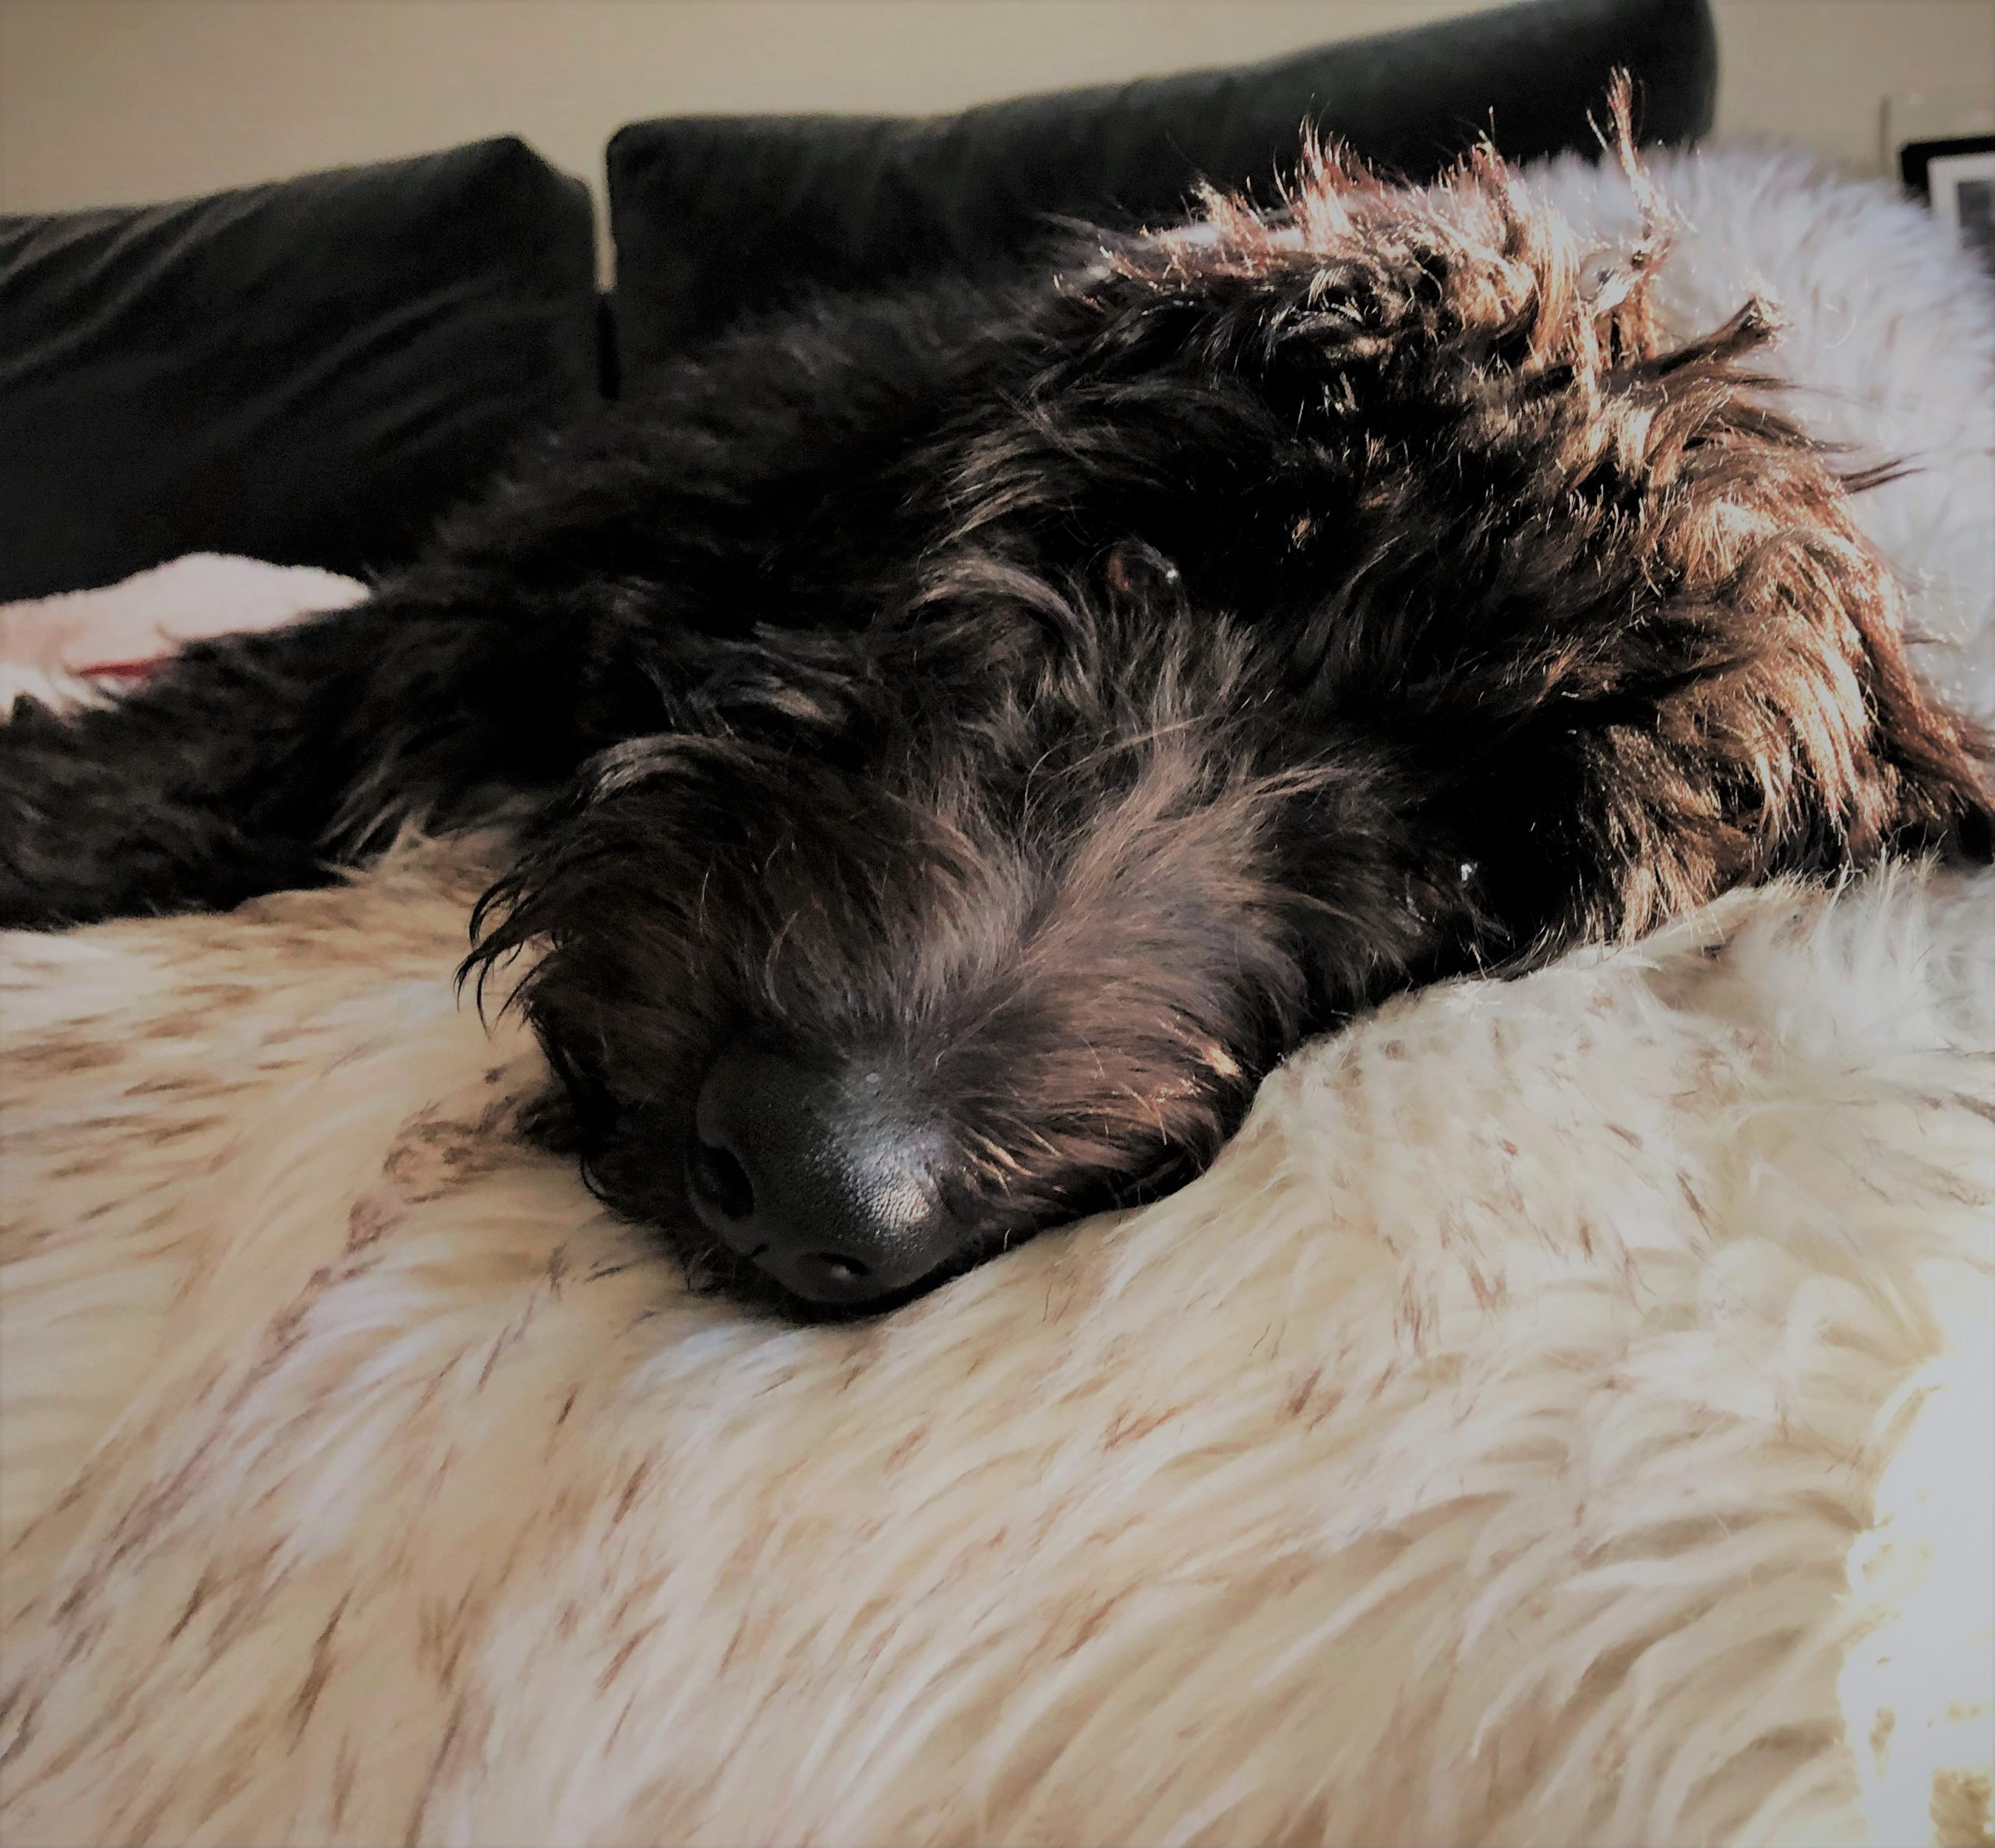 A precious Bordoodle puppy laying on the bed.